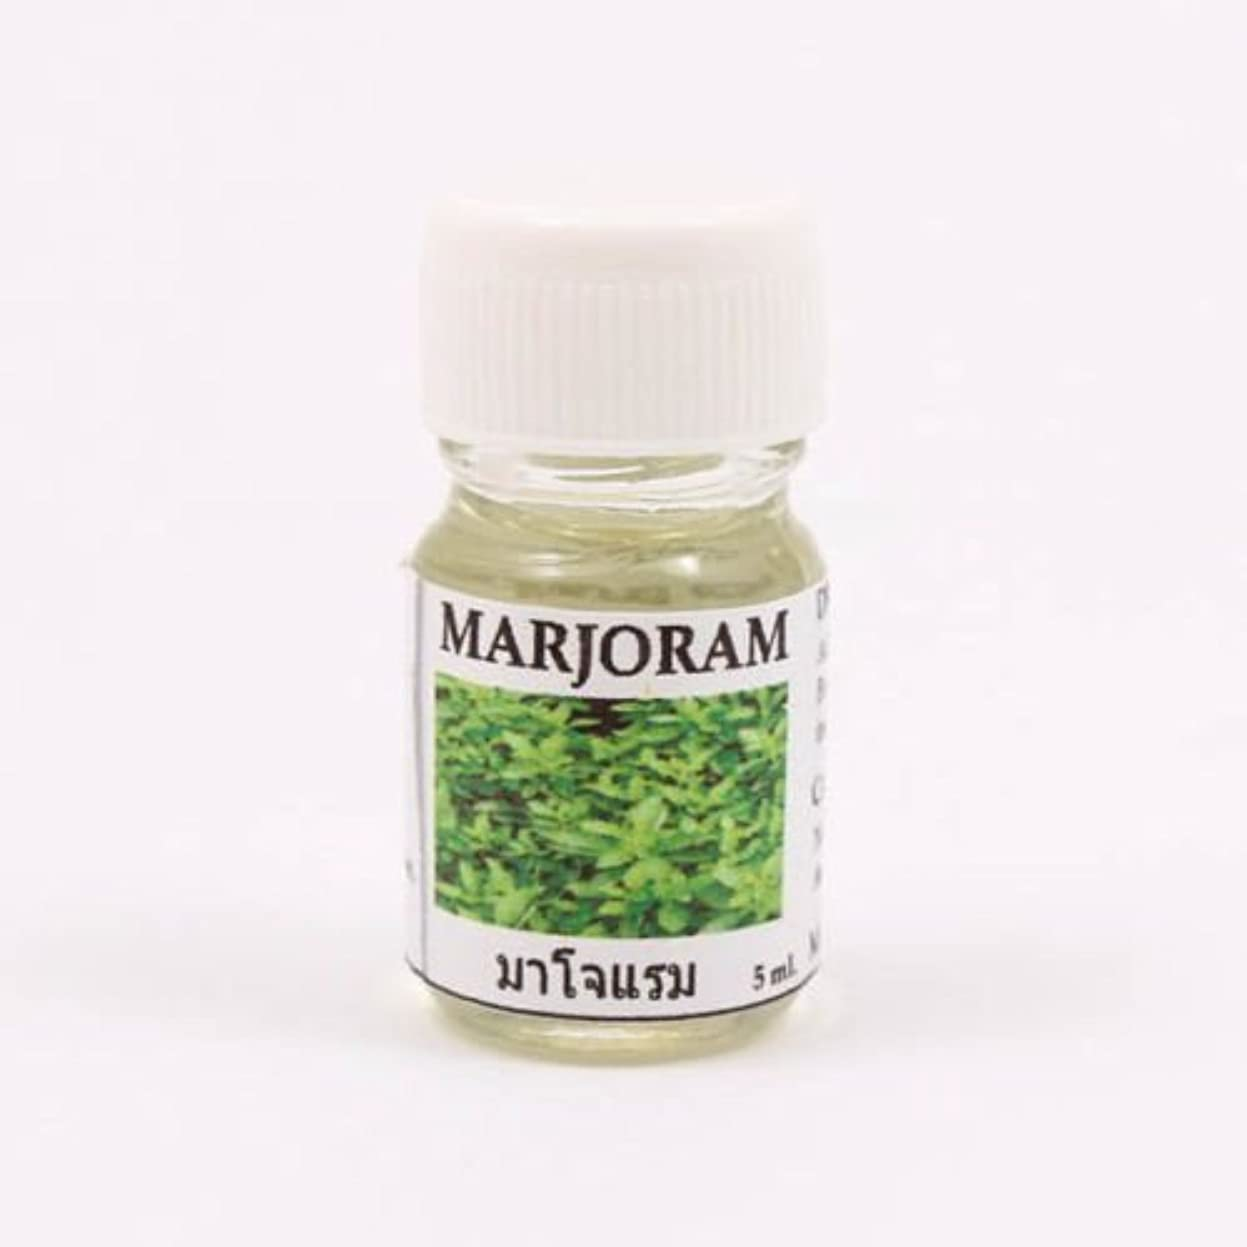 細部故障中自殺6X Marjoram Aroma Fragrance Essential Oil 5ML (cc) Diffuser Burner Therapy